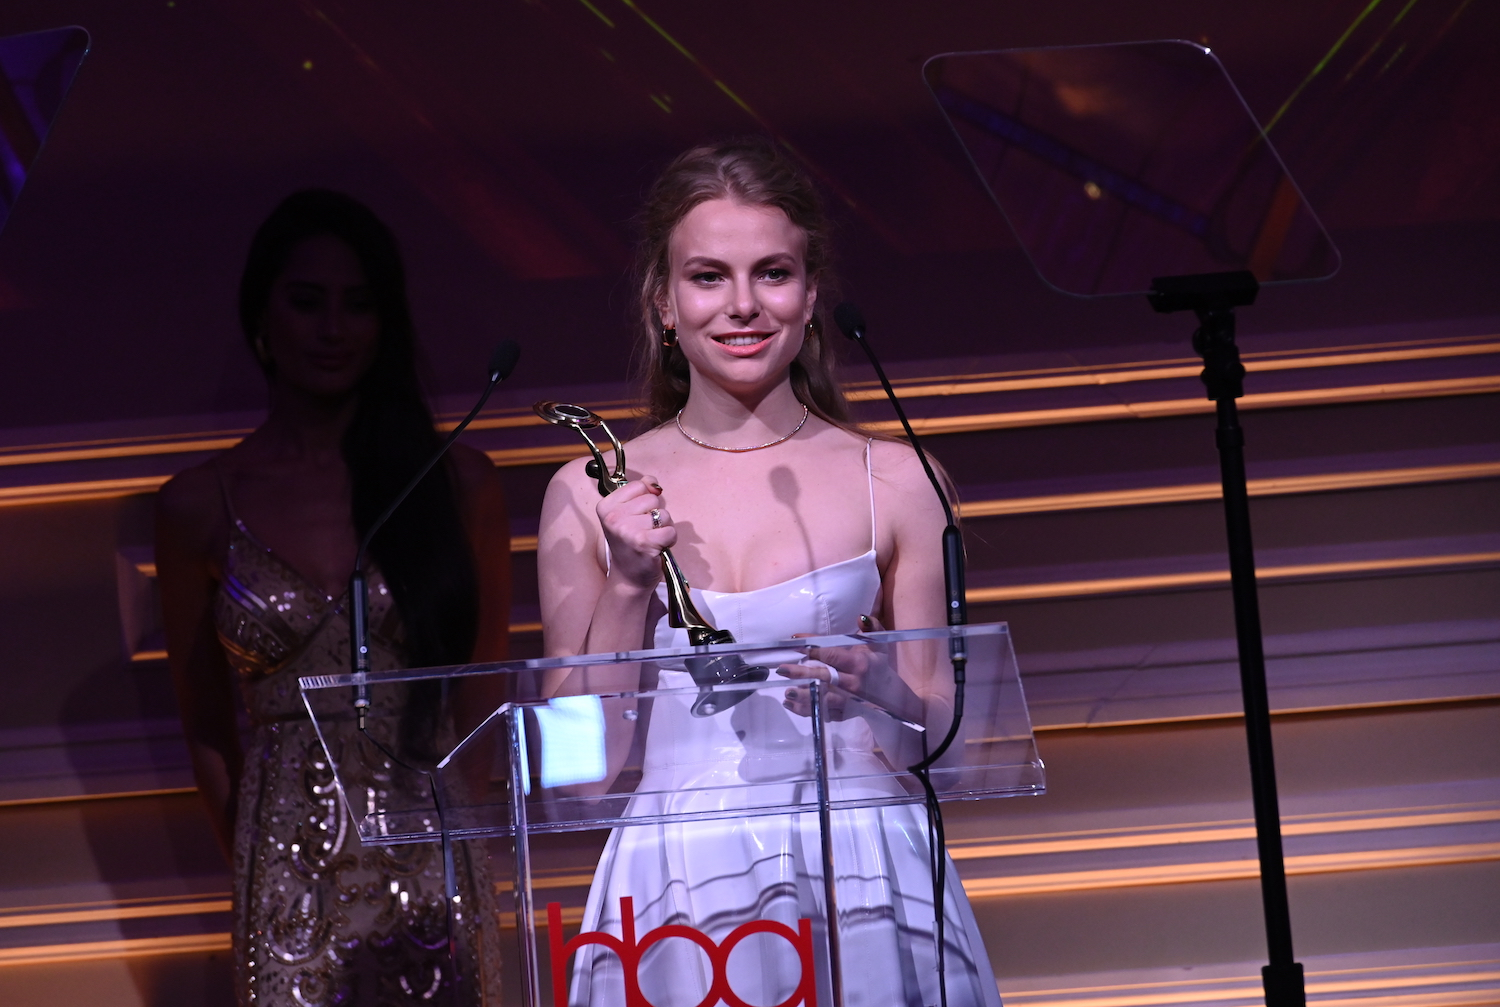 danielle lauder, estee lauder, act IV, hollywood beauty awards